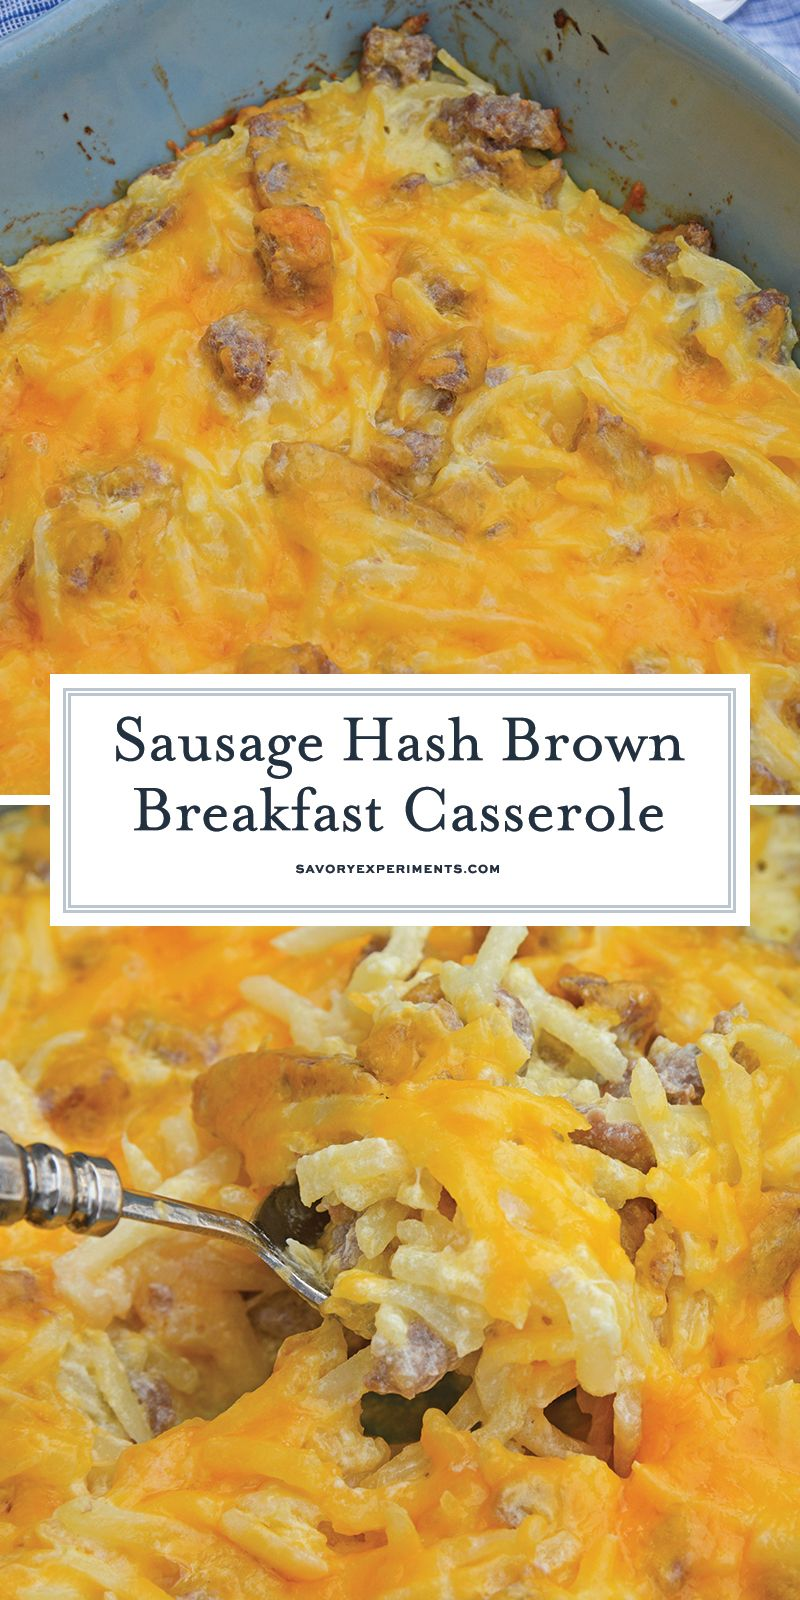 Photo of Sausage Hash Brown Breakfast Casserole